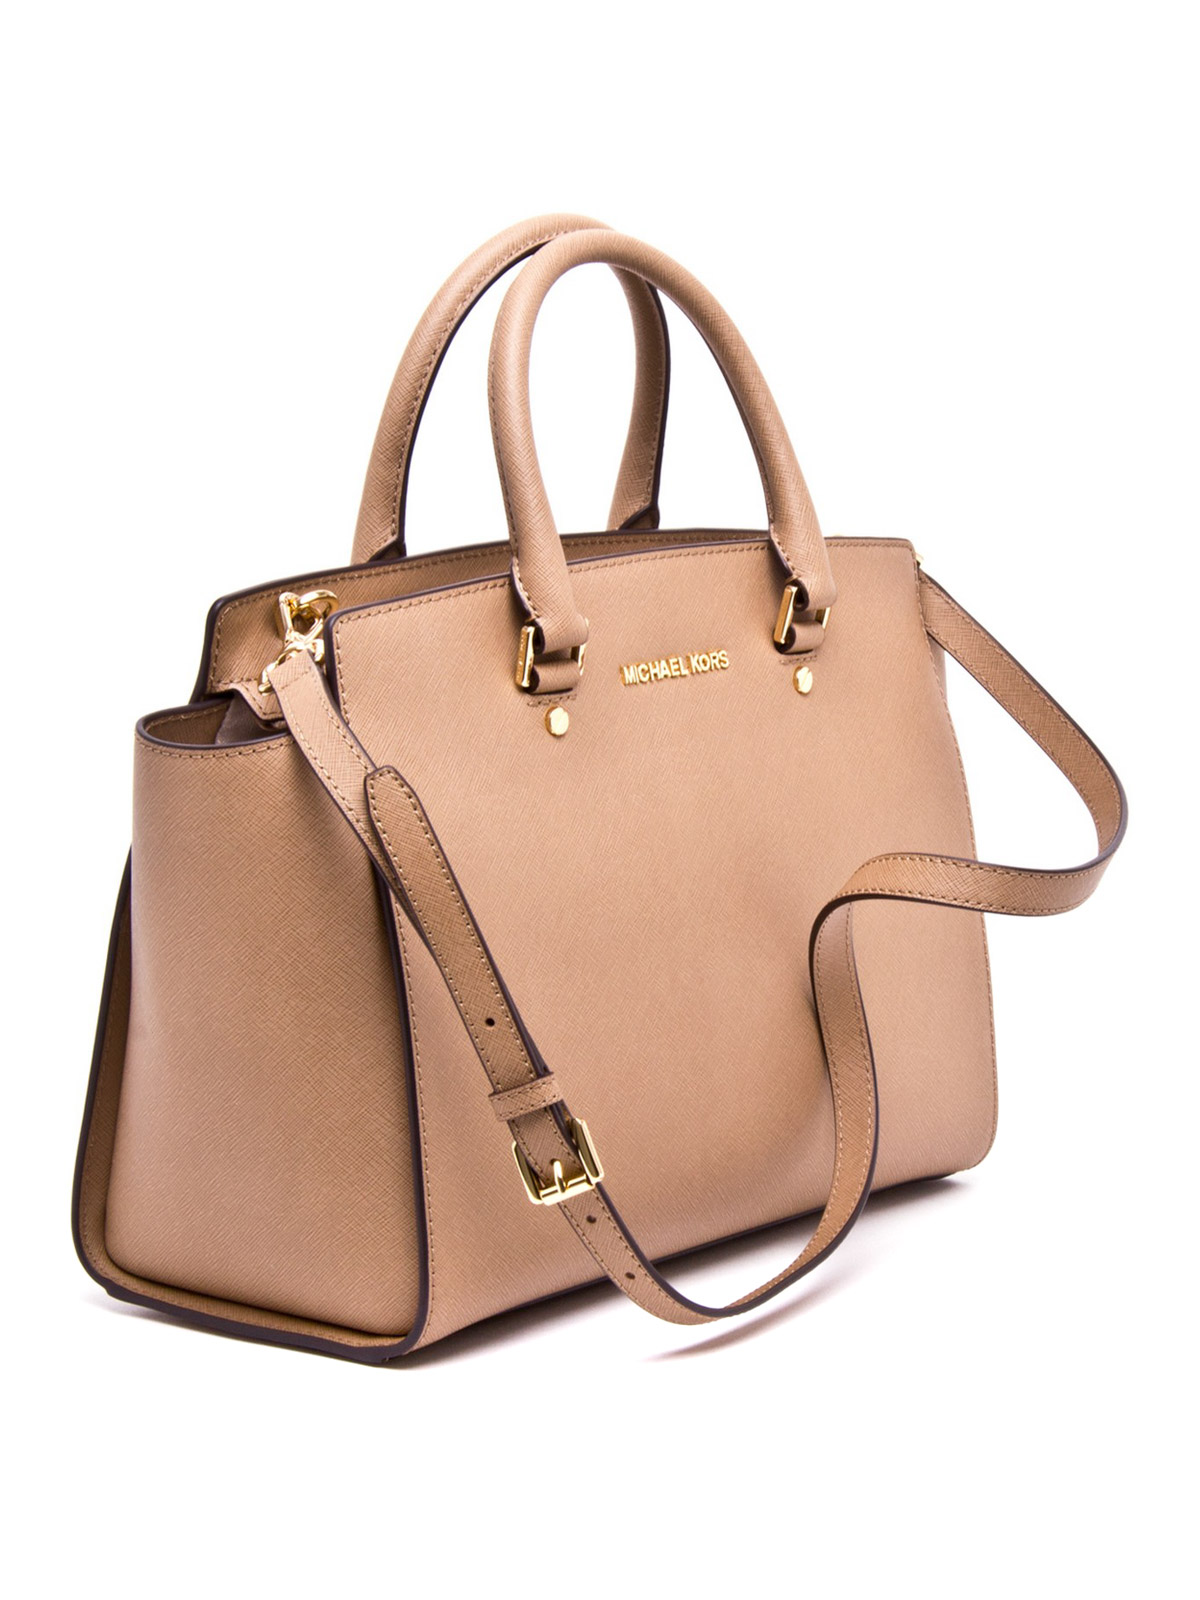 A simple leather shoulder tote with clean details and a minimalistic style, the Urban Tote is a wardrobe staple to make your everyday simply extraordinary. When you simply need a good bag, this quality leather tote will sustain it's timeless style through ever-changing trends.